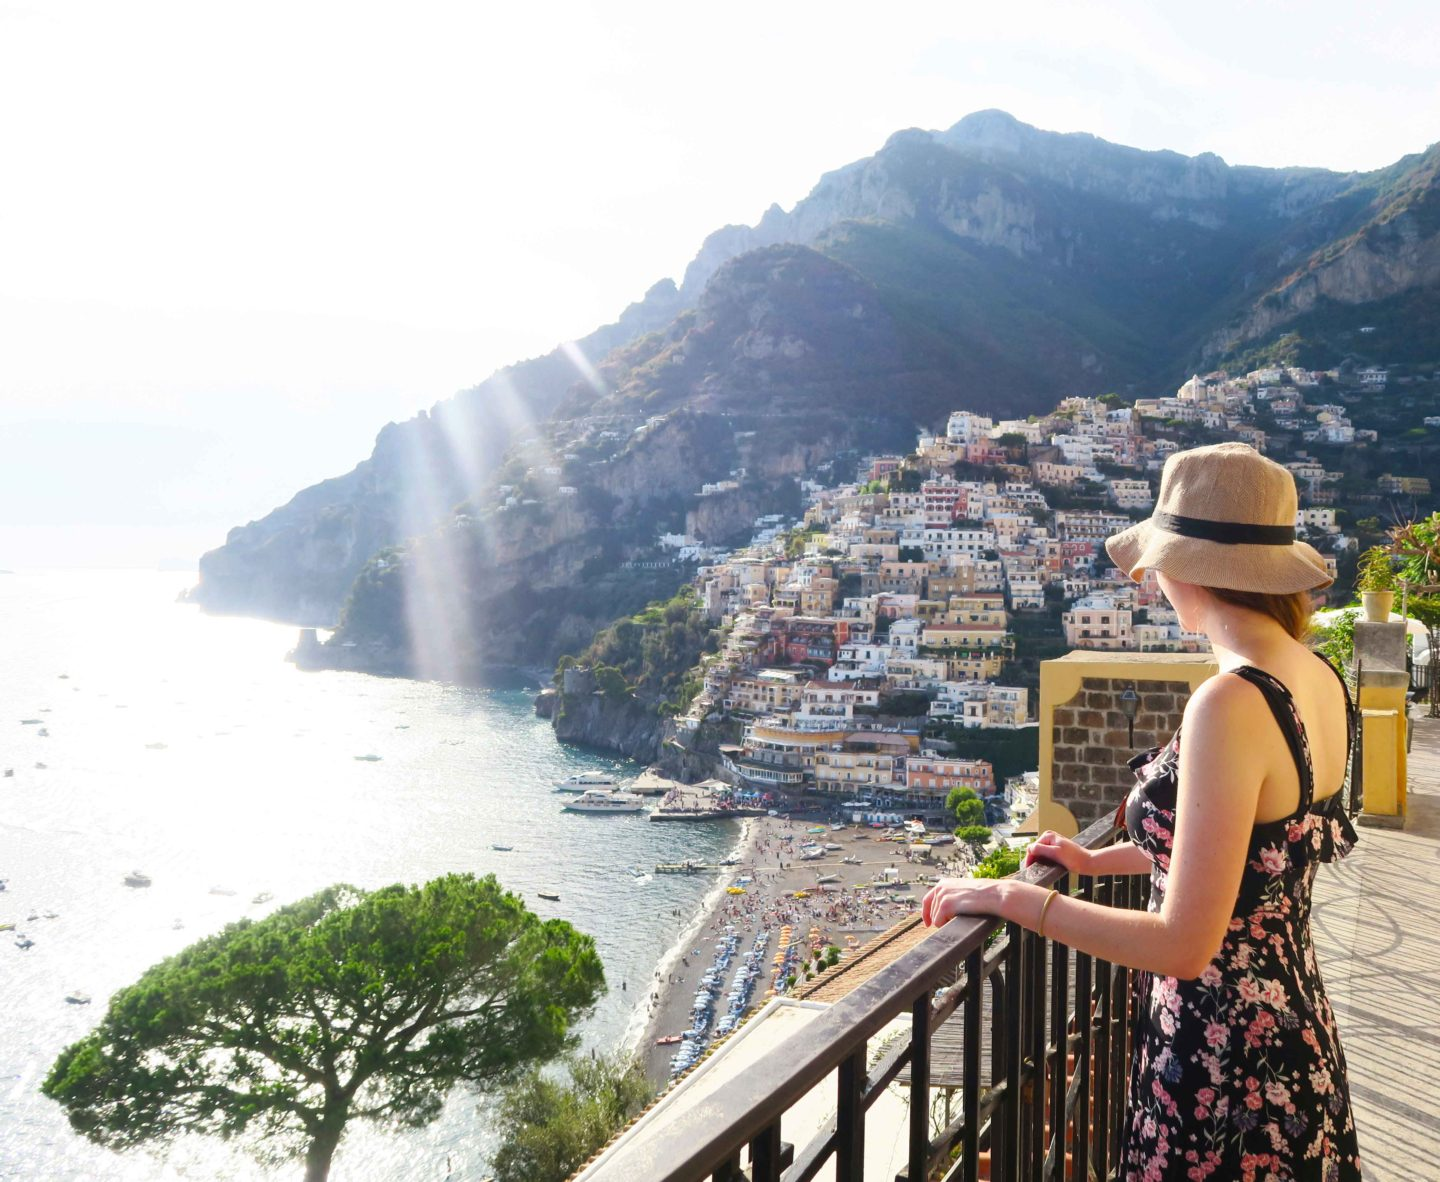 melissa carne looking at the view over positano